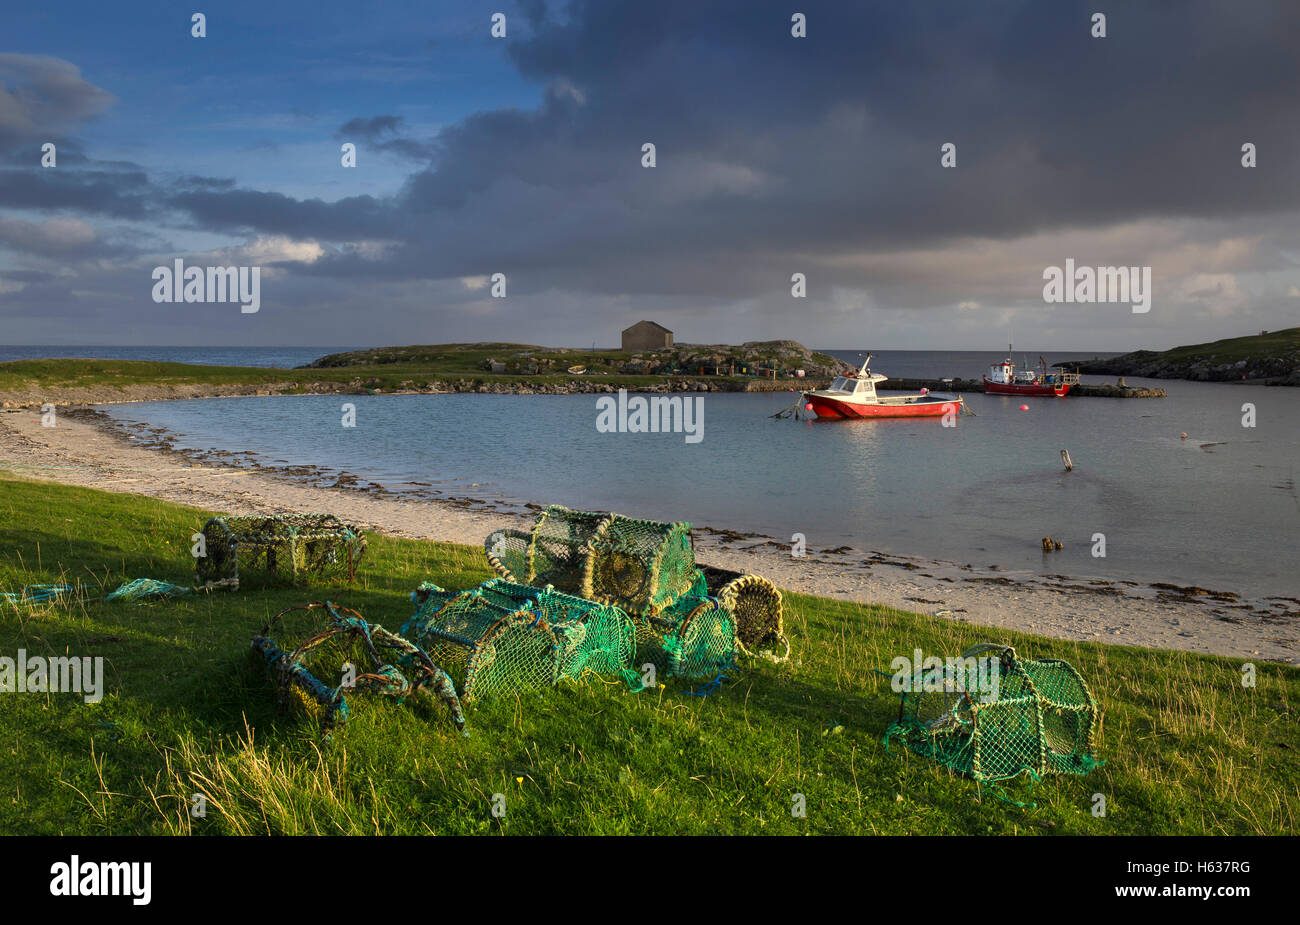 Late afternoon at Scarinish Harbour,Tiree,Inner Hebrides,Argyll and Bute,Scotland - Stock Image